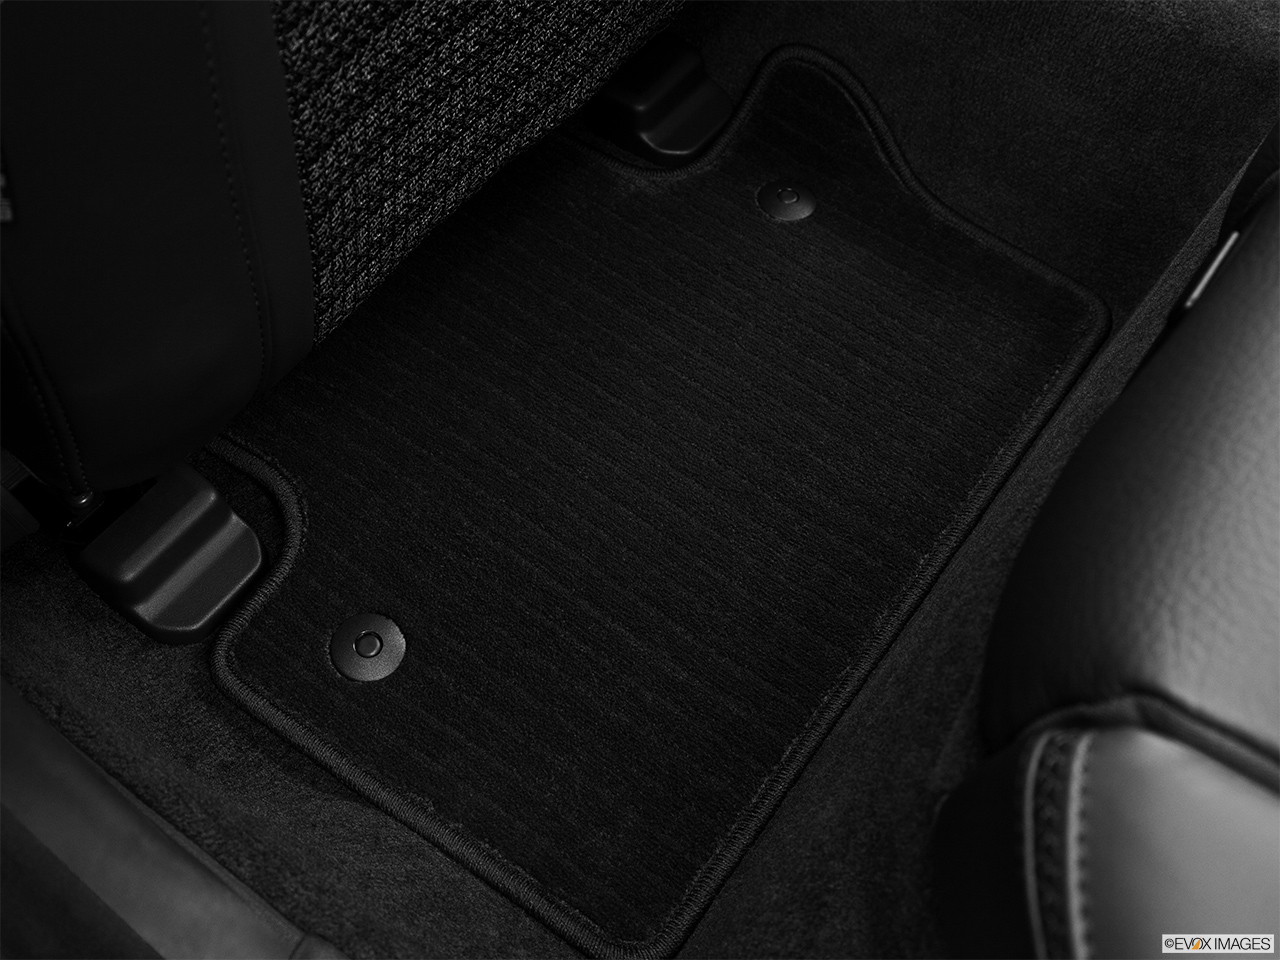 2013 Volvo XC70 T6 AWD Platinum Rear driver's side floor mat. Mid-seat level from outside looking in.